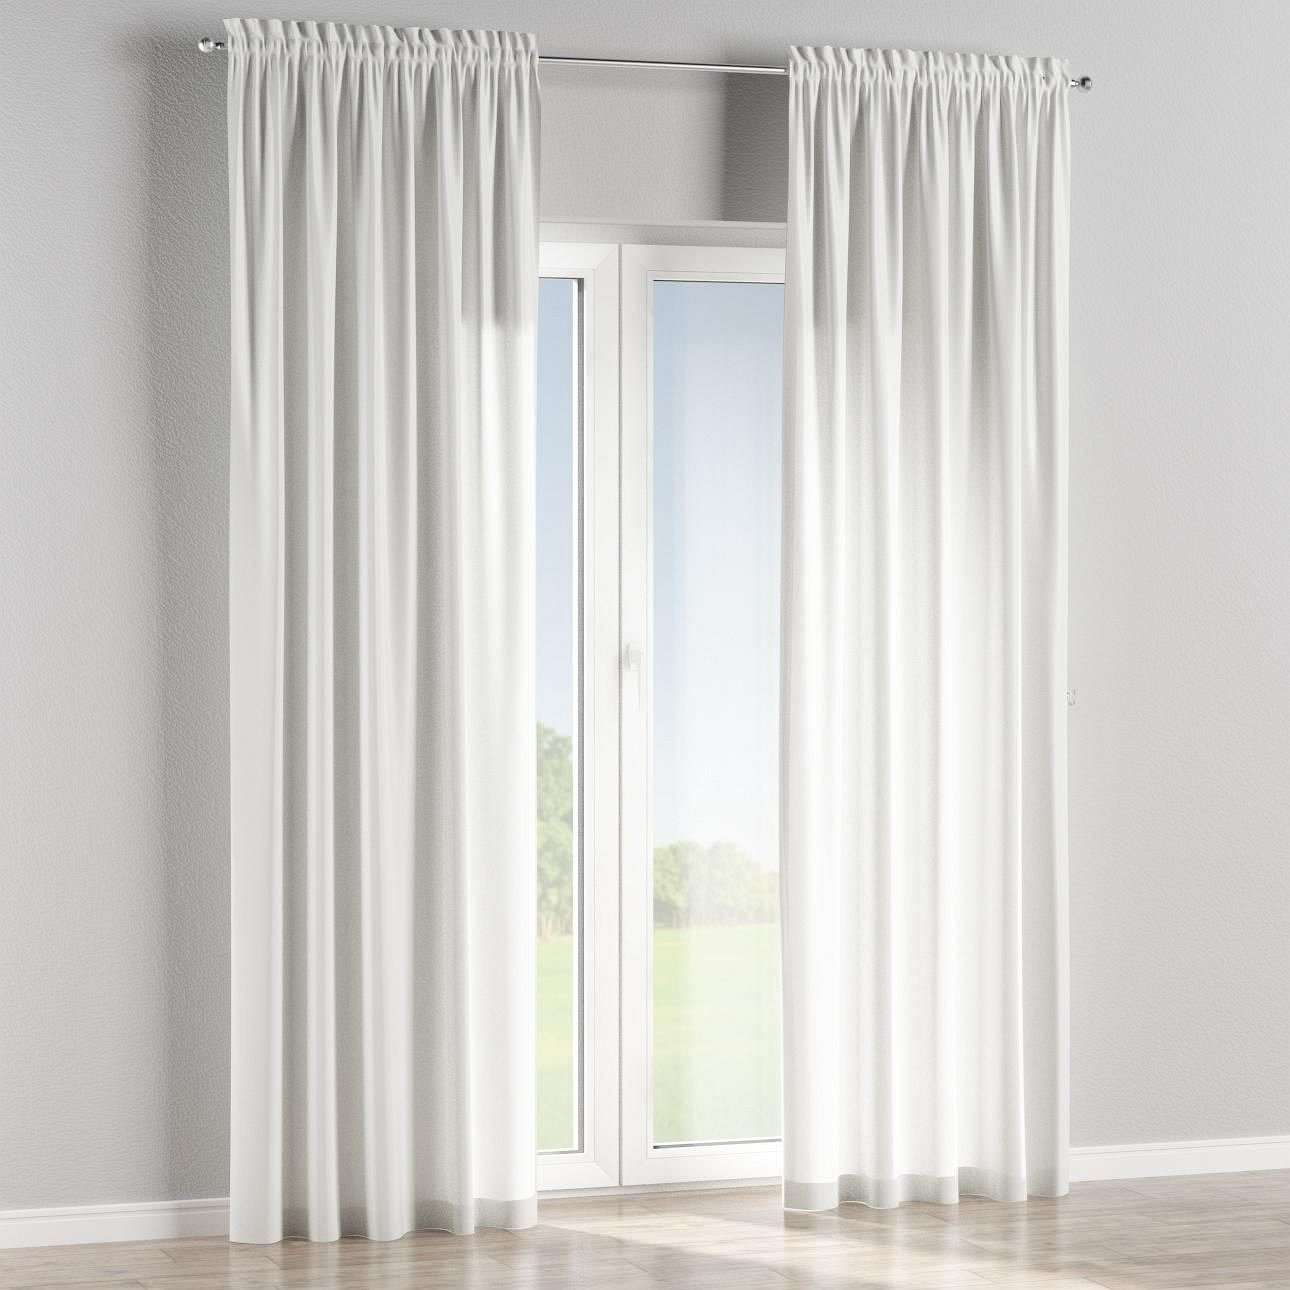 Slot and frill lined curtains in collection Rustica, fabric: 140-58